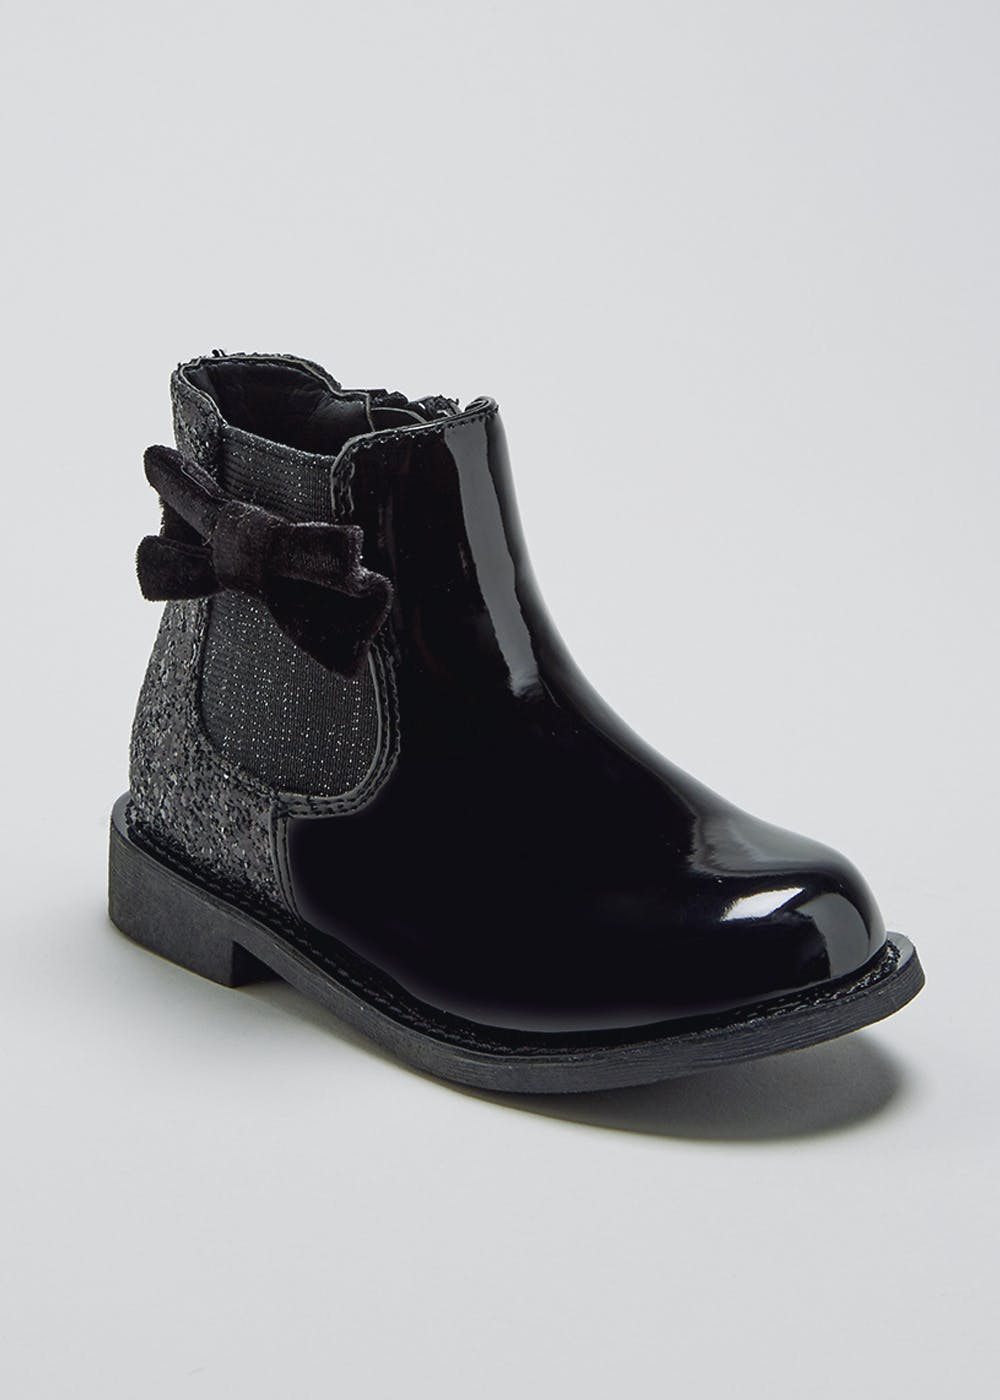 e77112ade62d Girls Patent Ankle Boots (Younger 4-12) – Black – Matalan